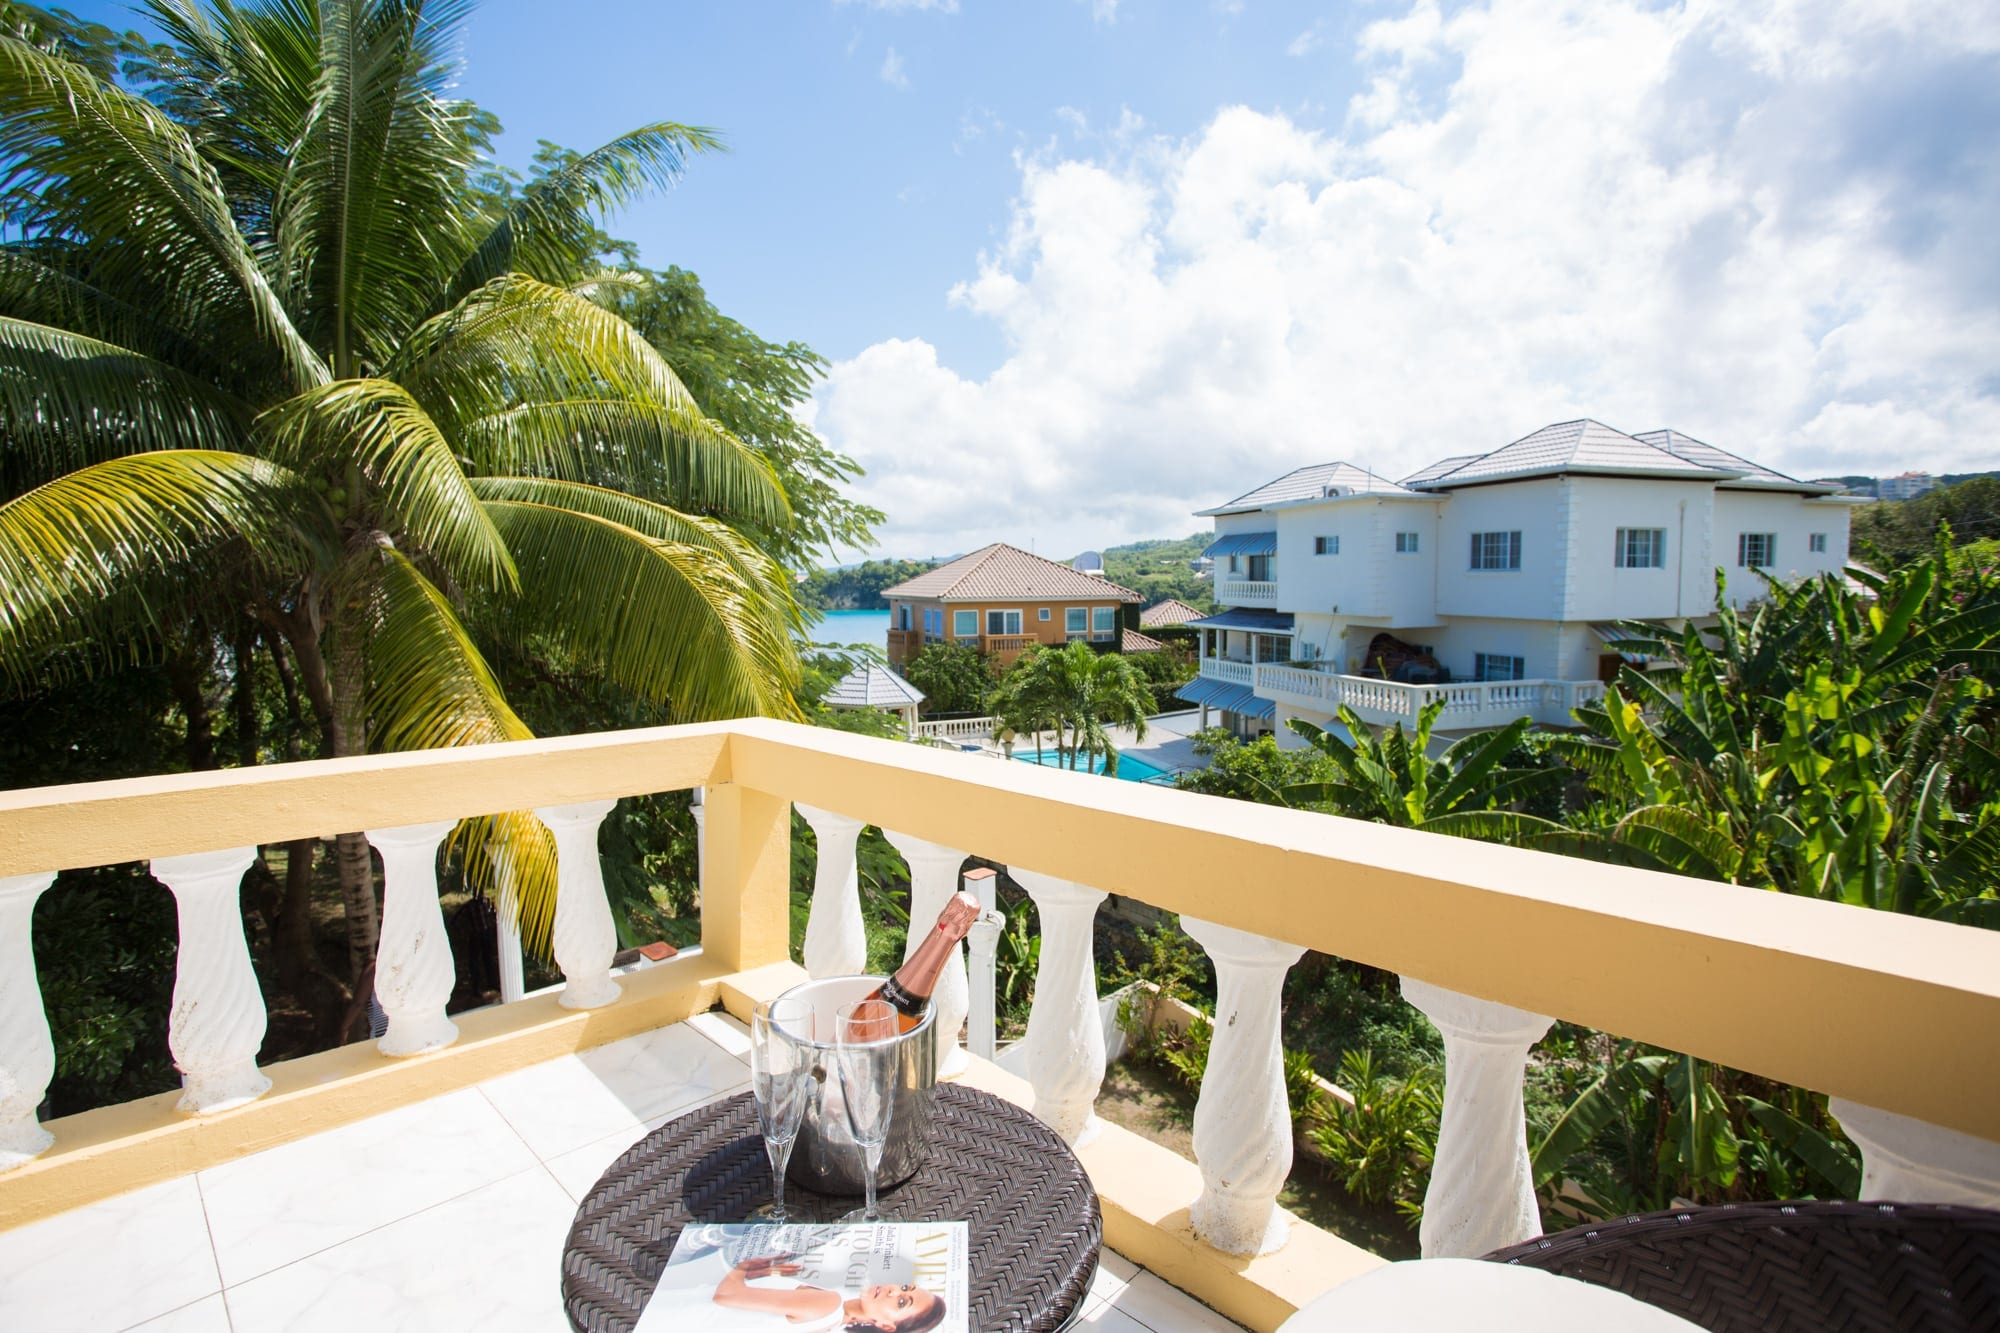 Jamaica vacation home with ocean view patios